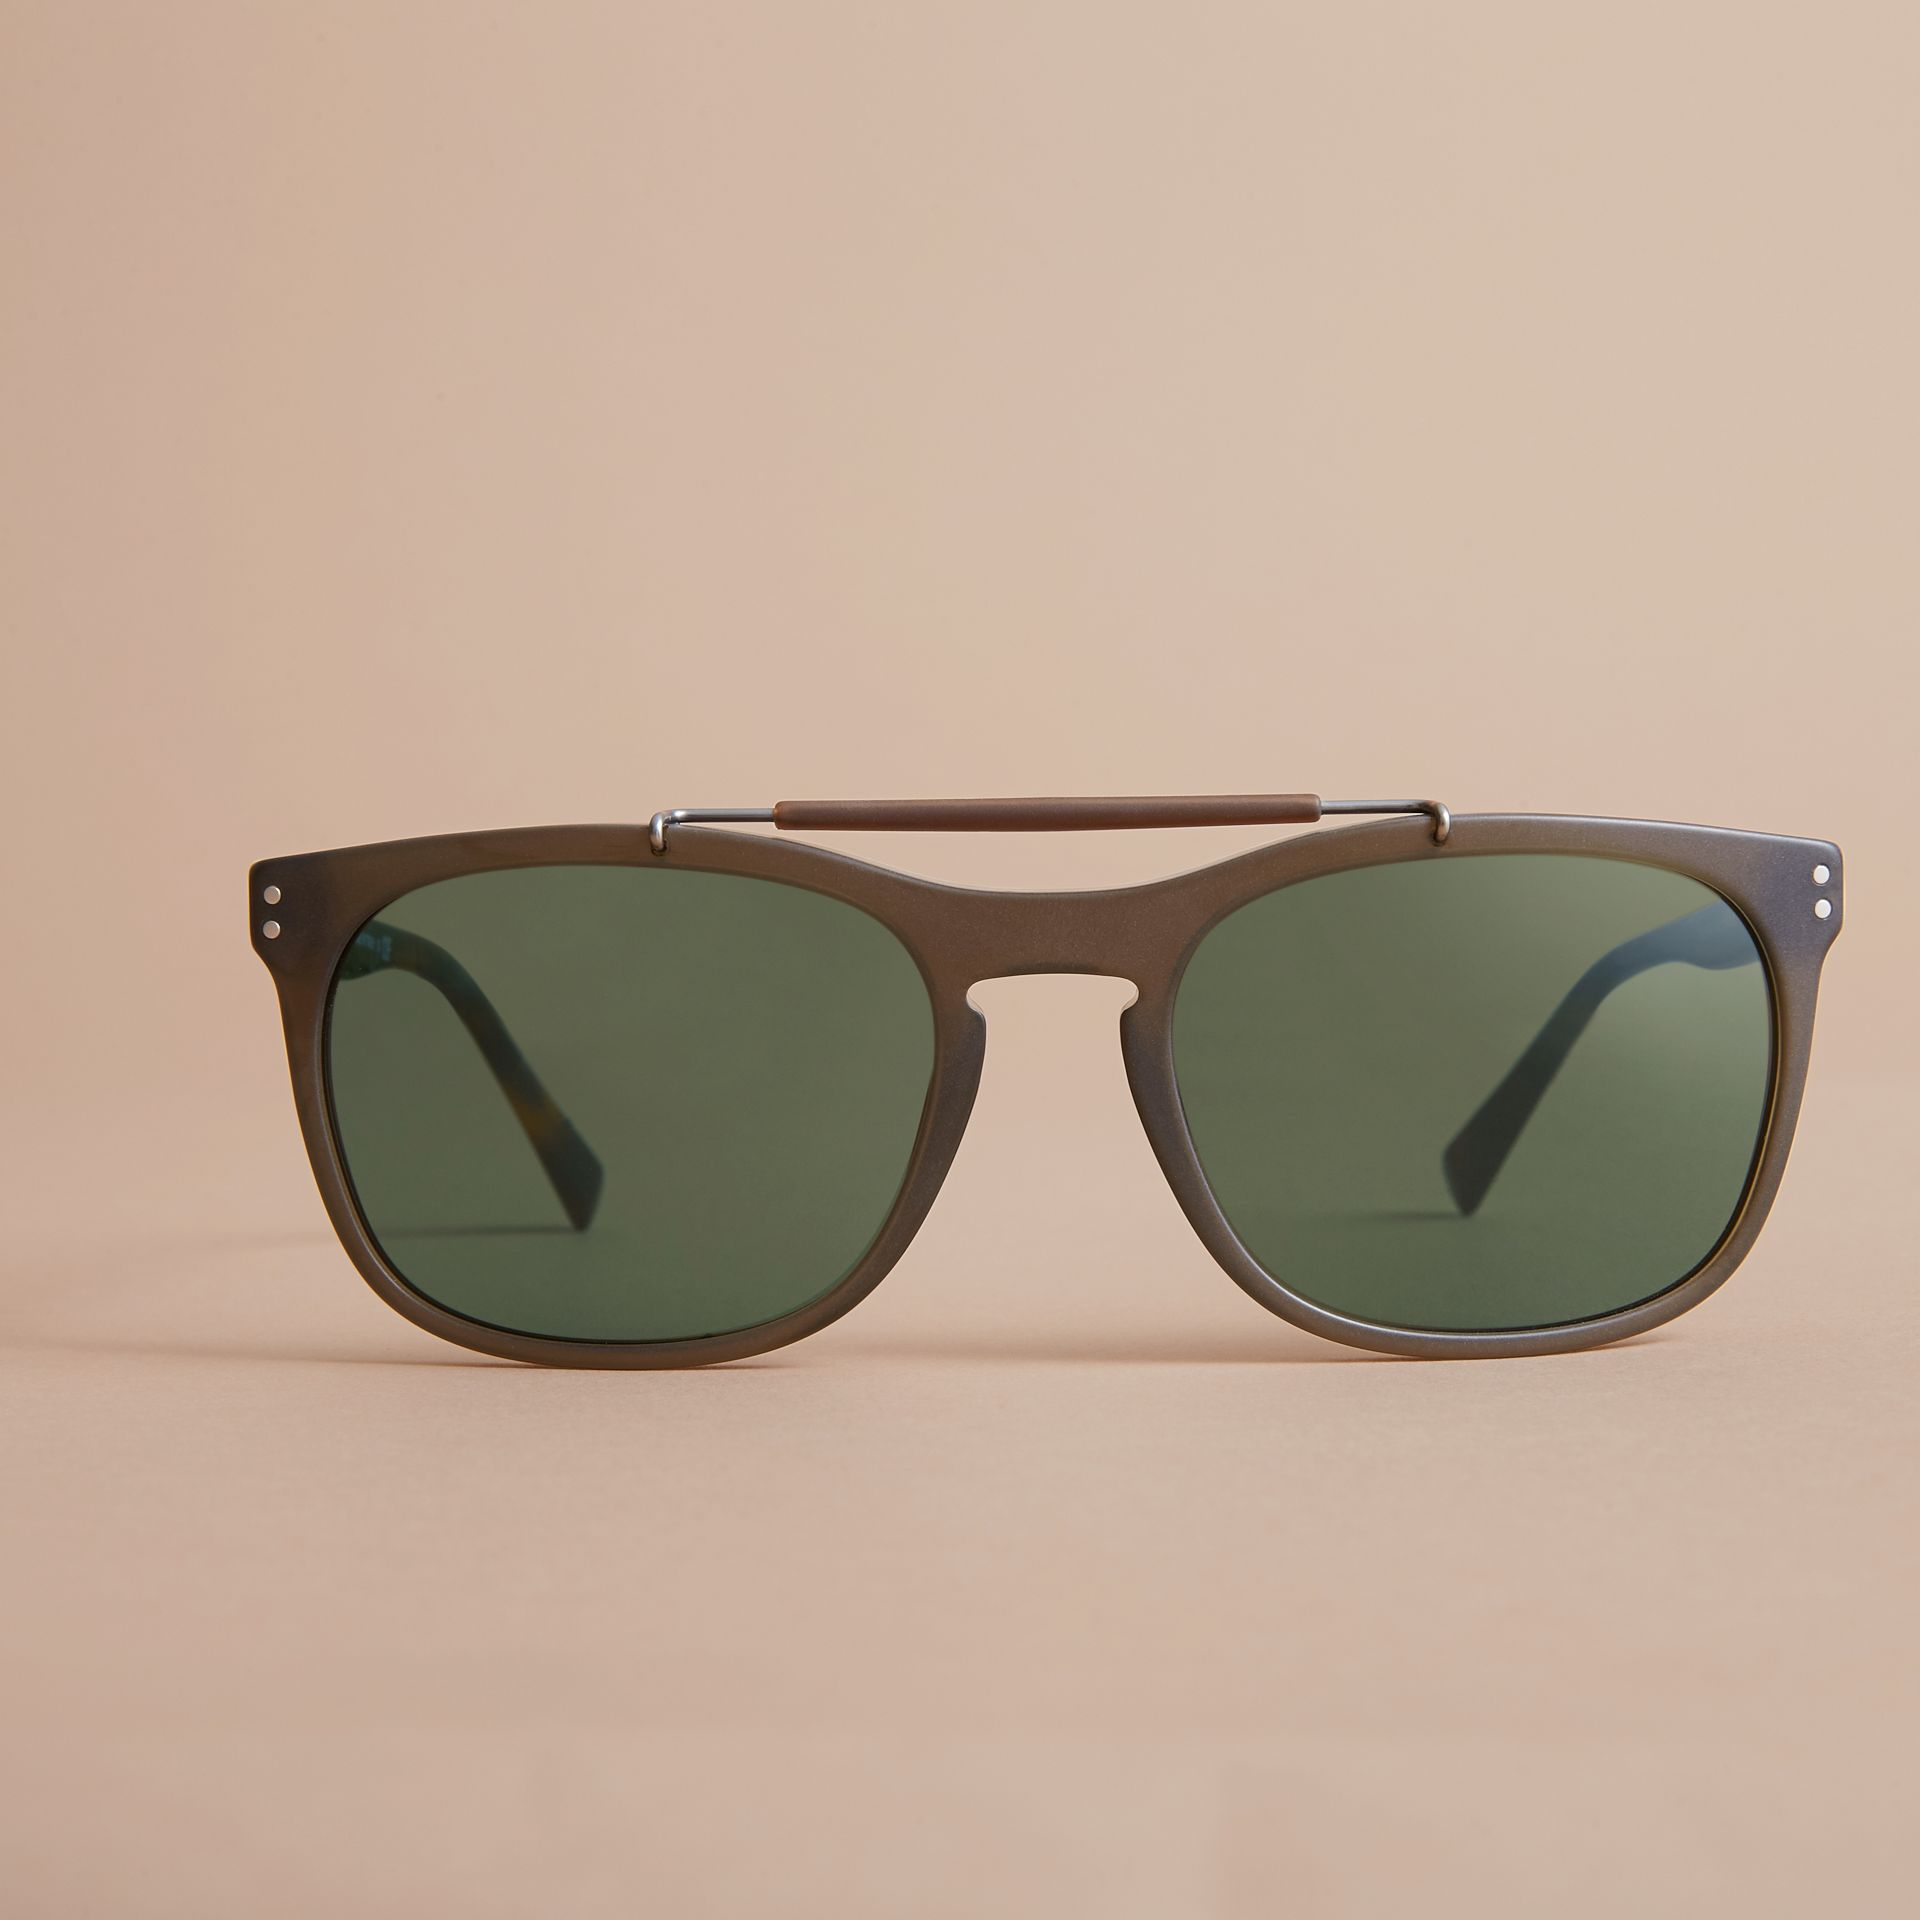 Top Bar Square Frame Sunglasses in Olive | Burberry Canada - gallery image 2